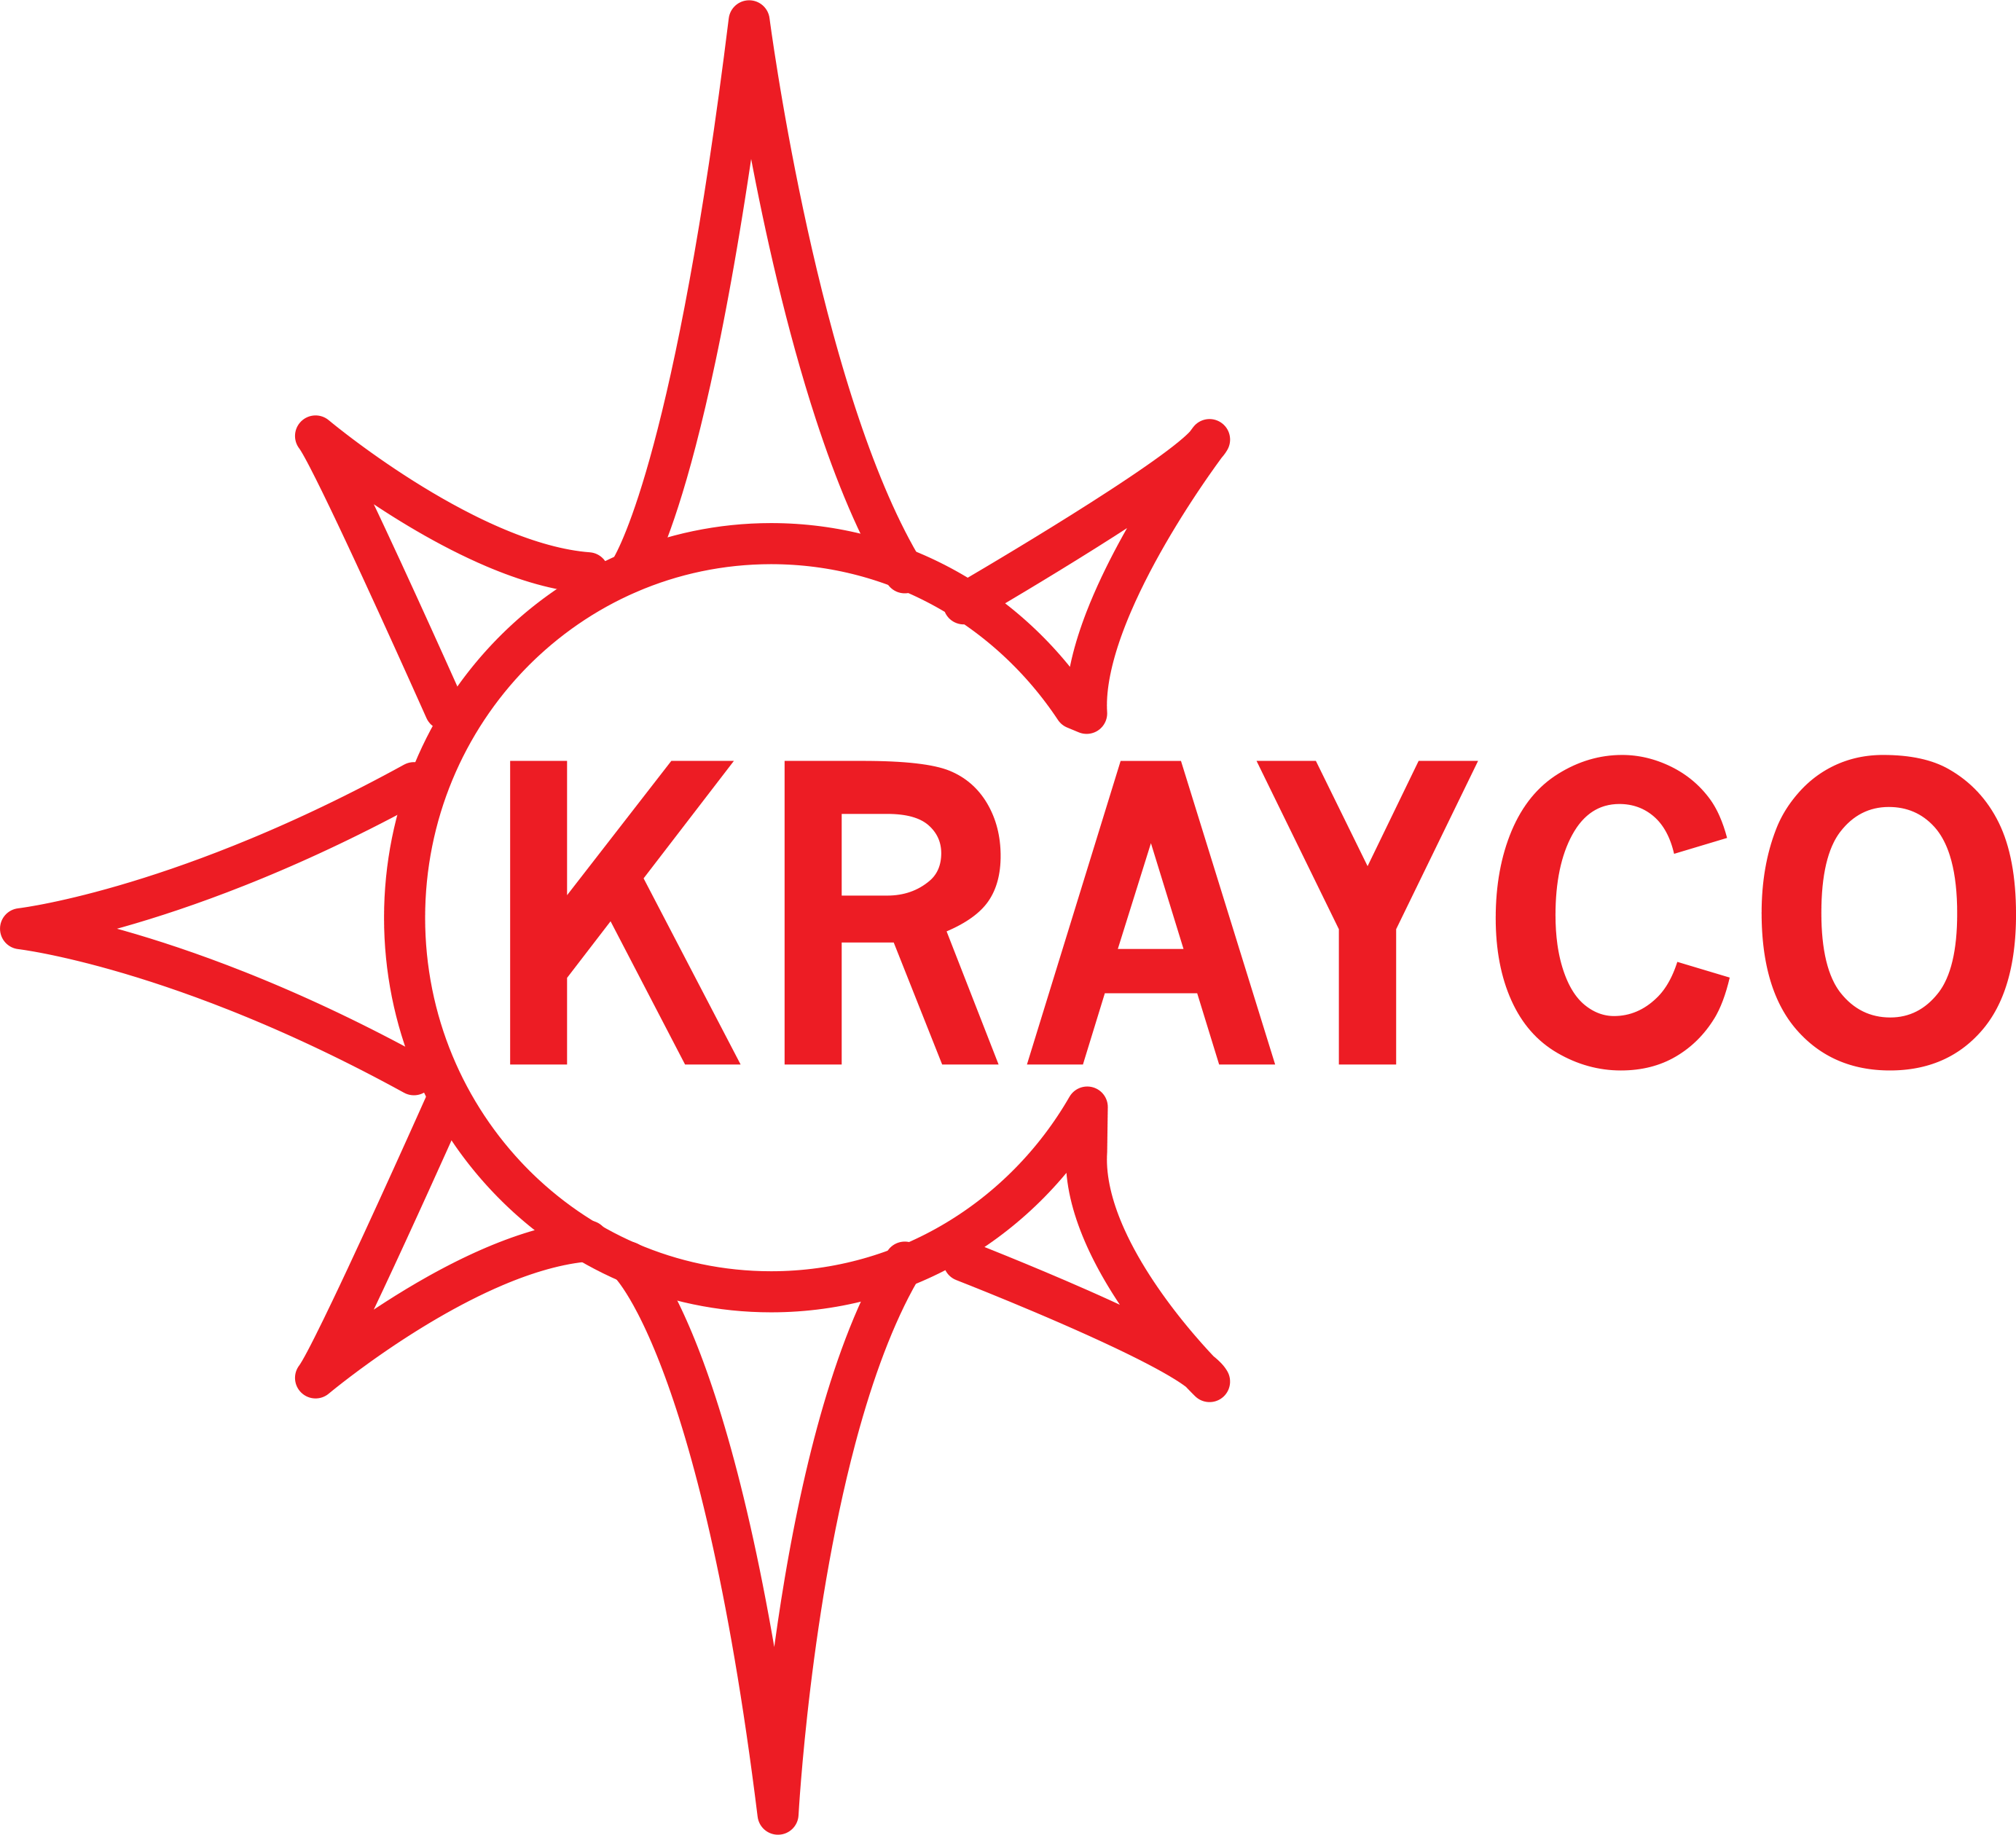 Krayco Window Treatments